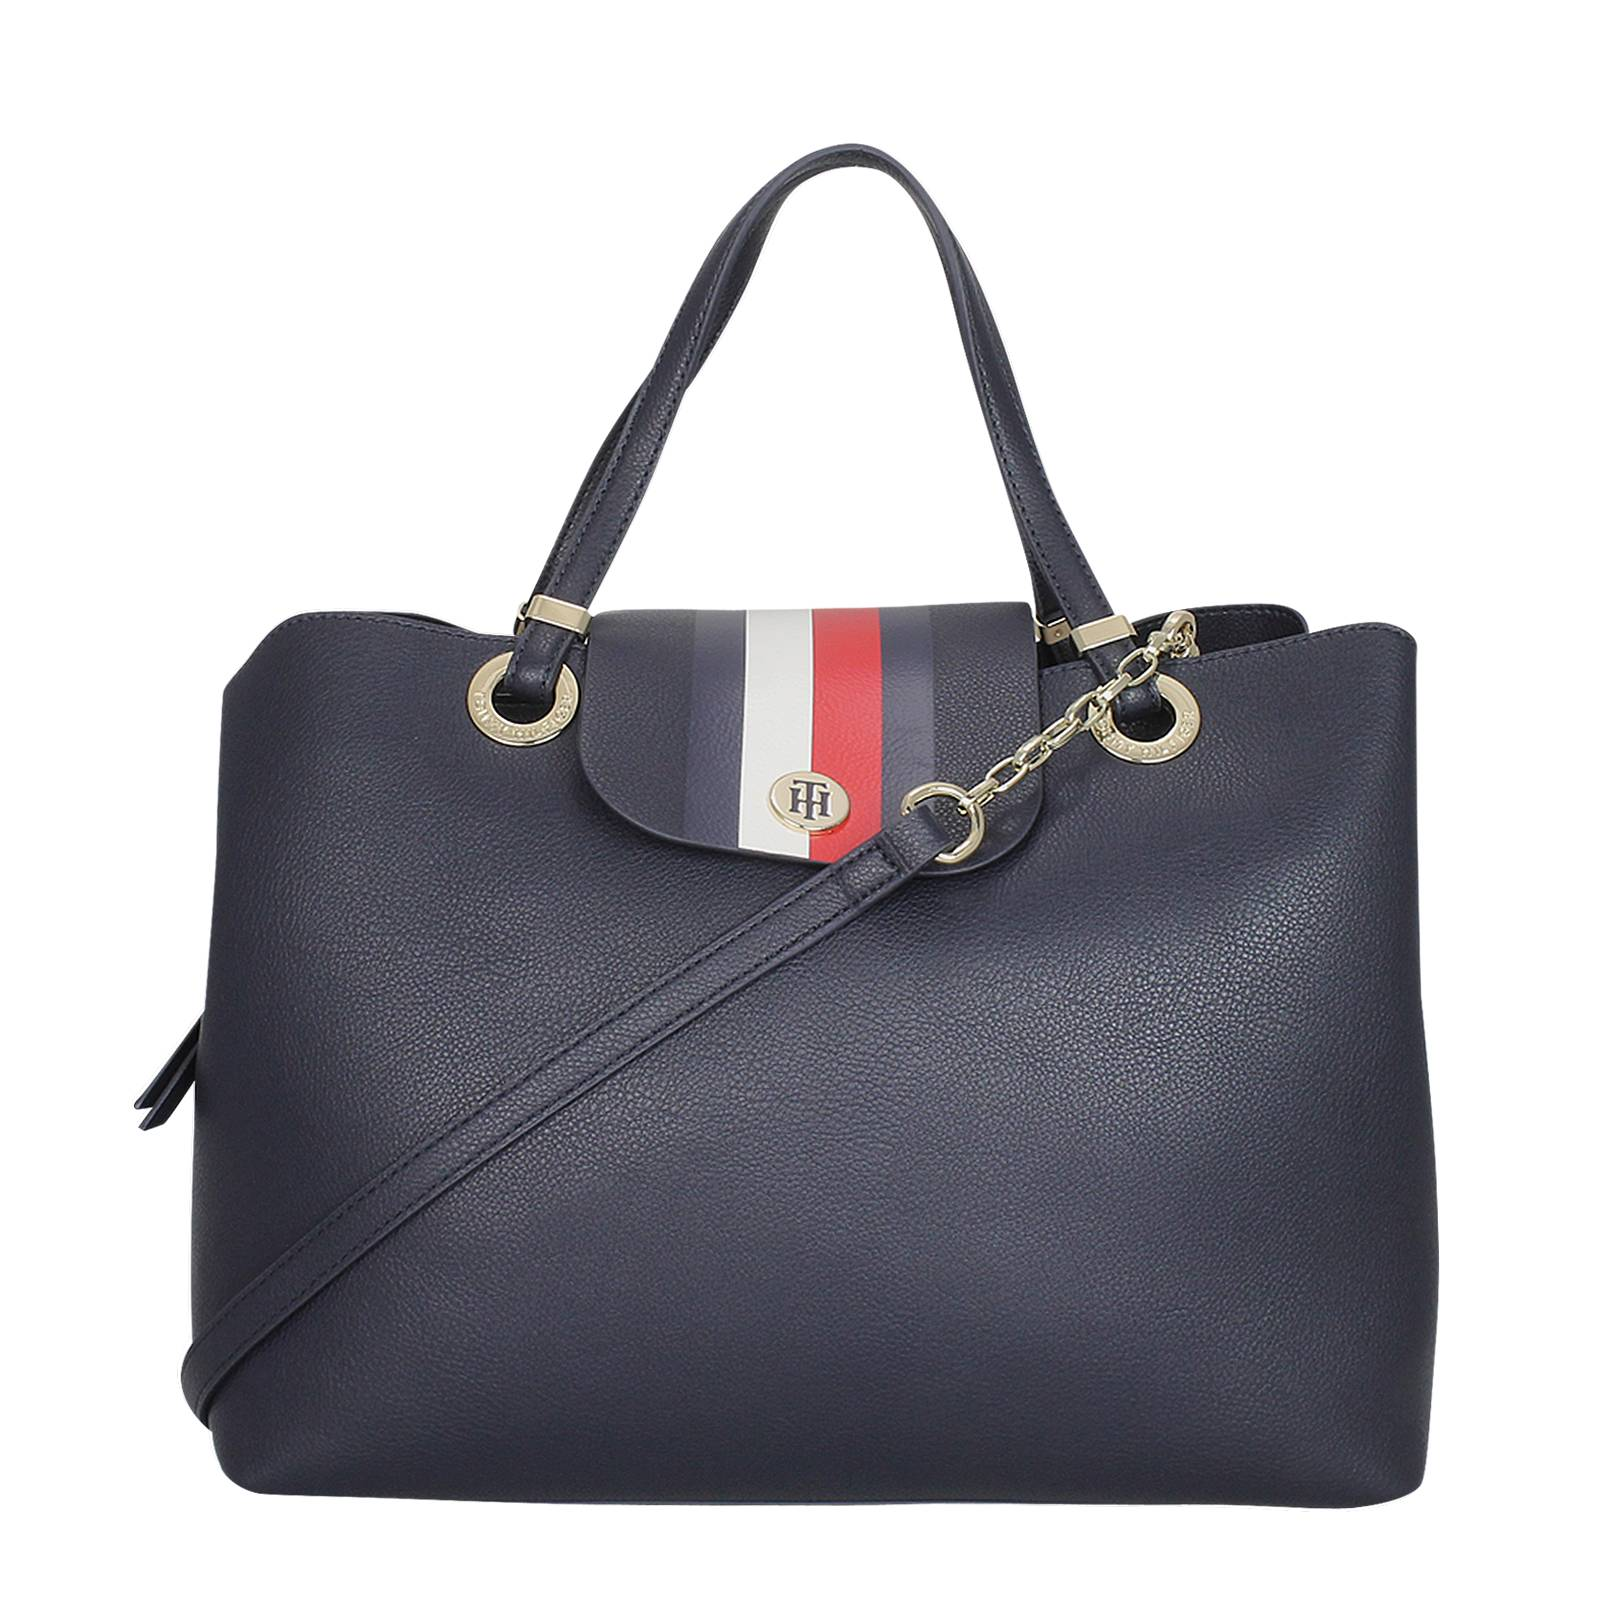 c21897872b748 My Tommy Satchel - Tommy Hilfiger Women s Handbag made of synthetic ...